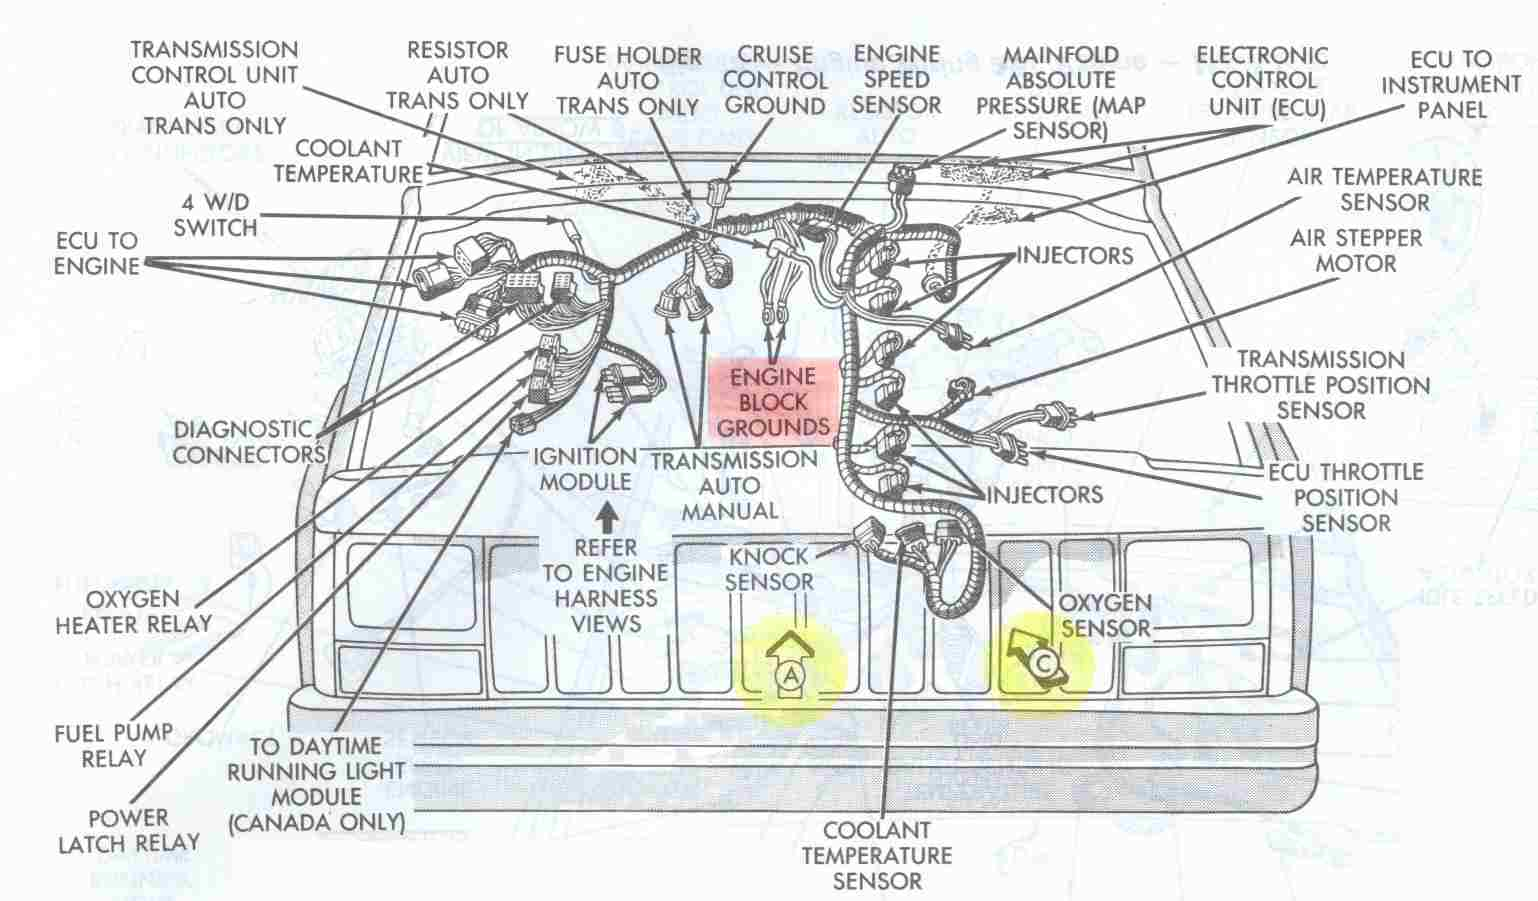 1997 Jeep Cherokee Engine Diagram on toyota tundra oil pan